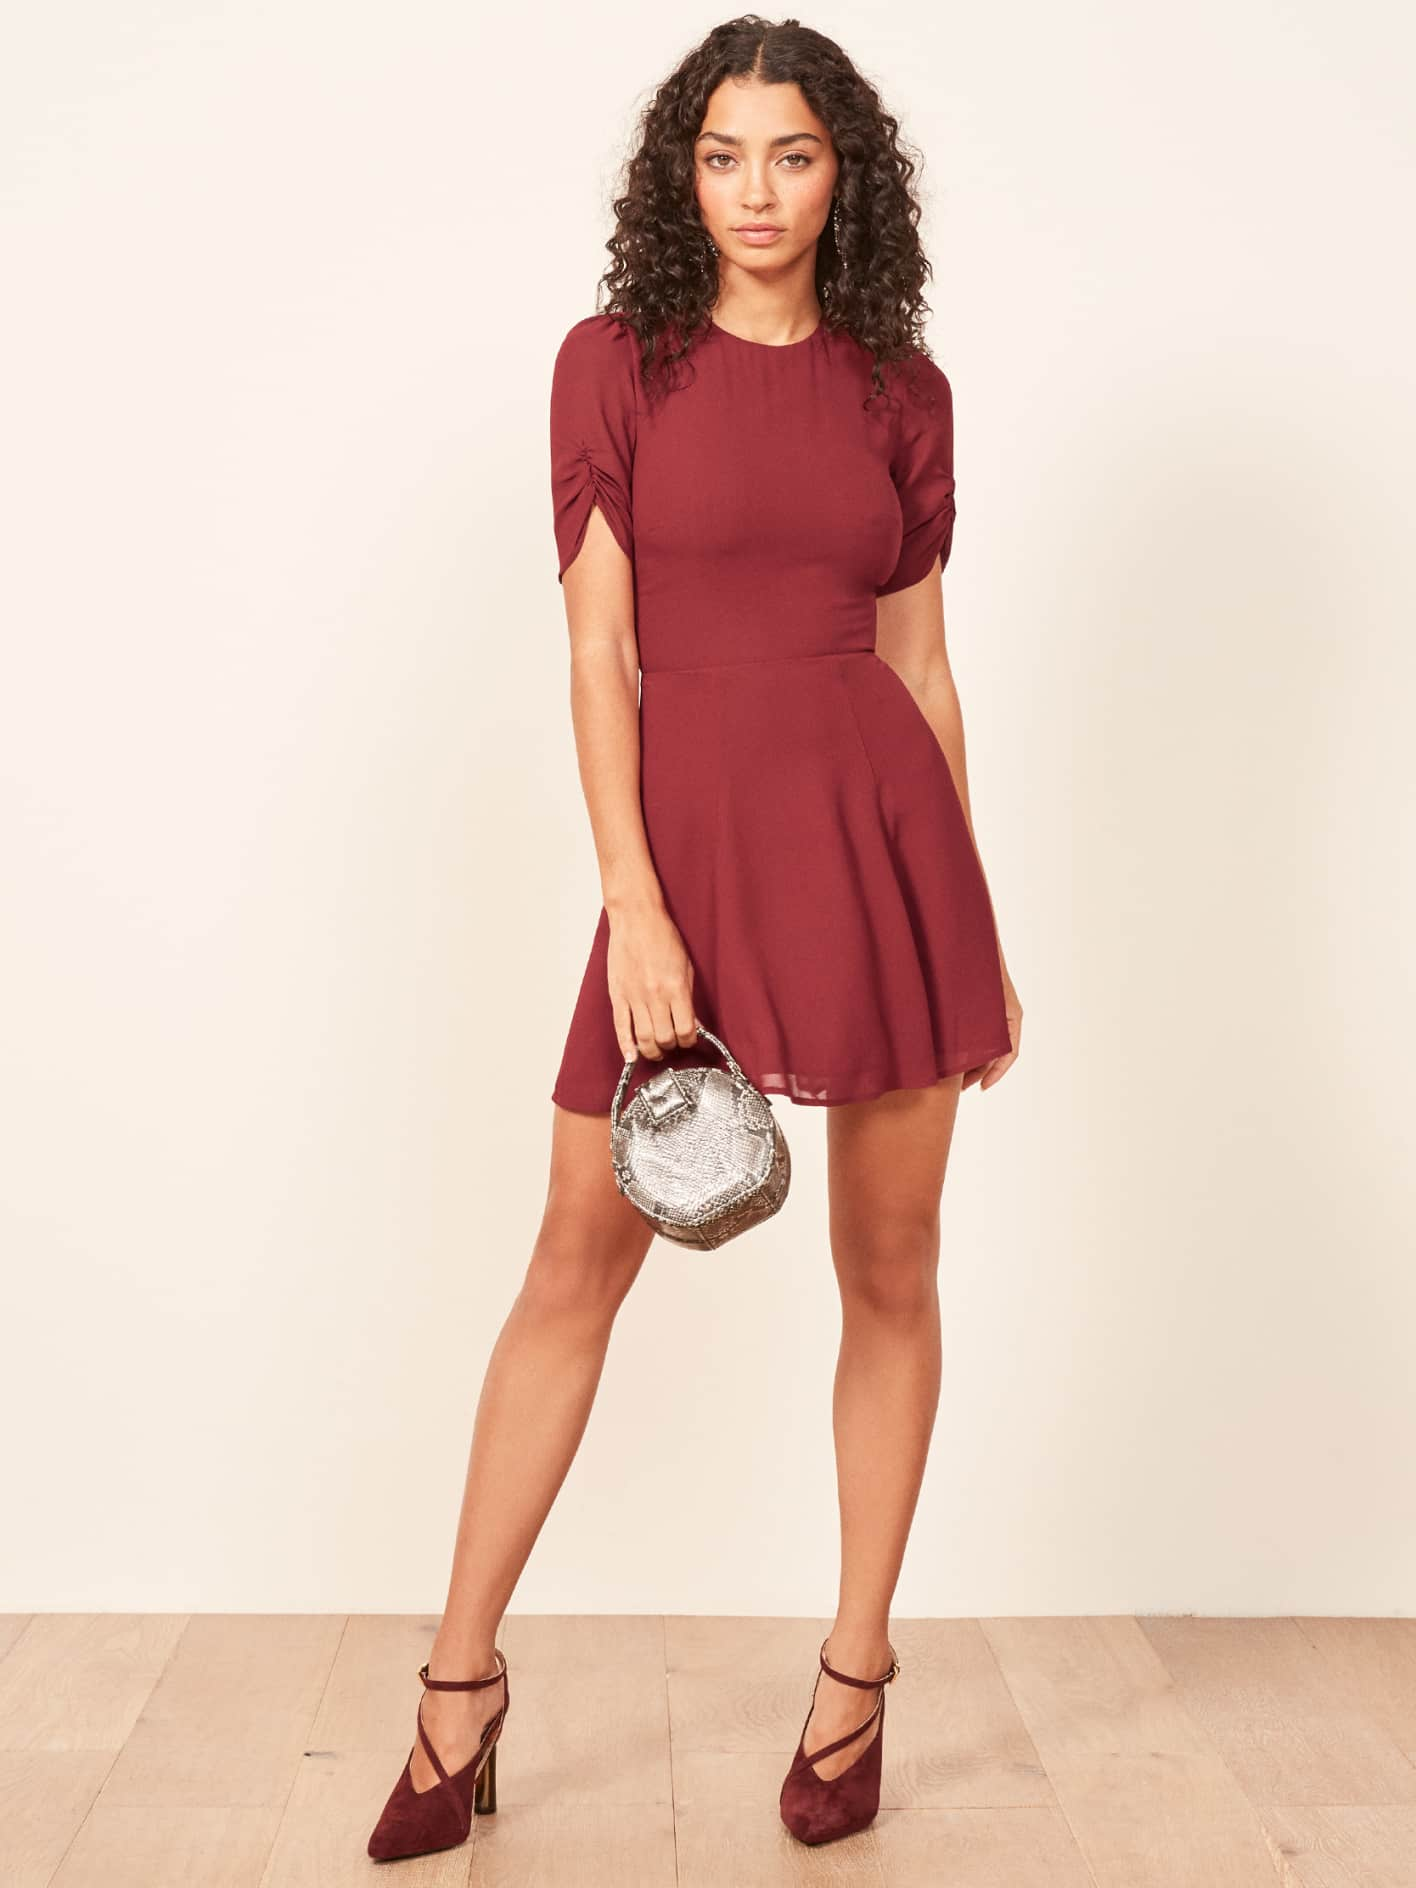 Reformation Gracie Red Dress